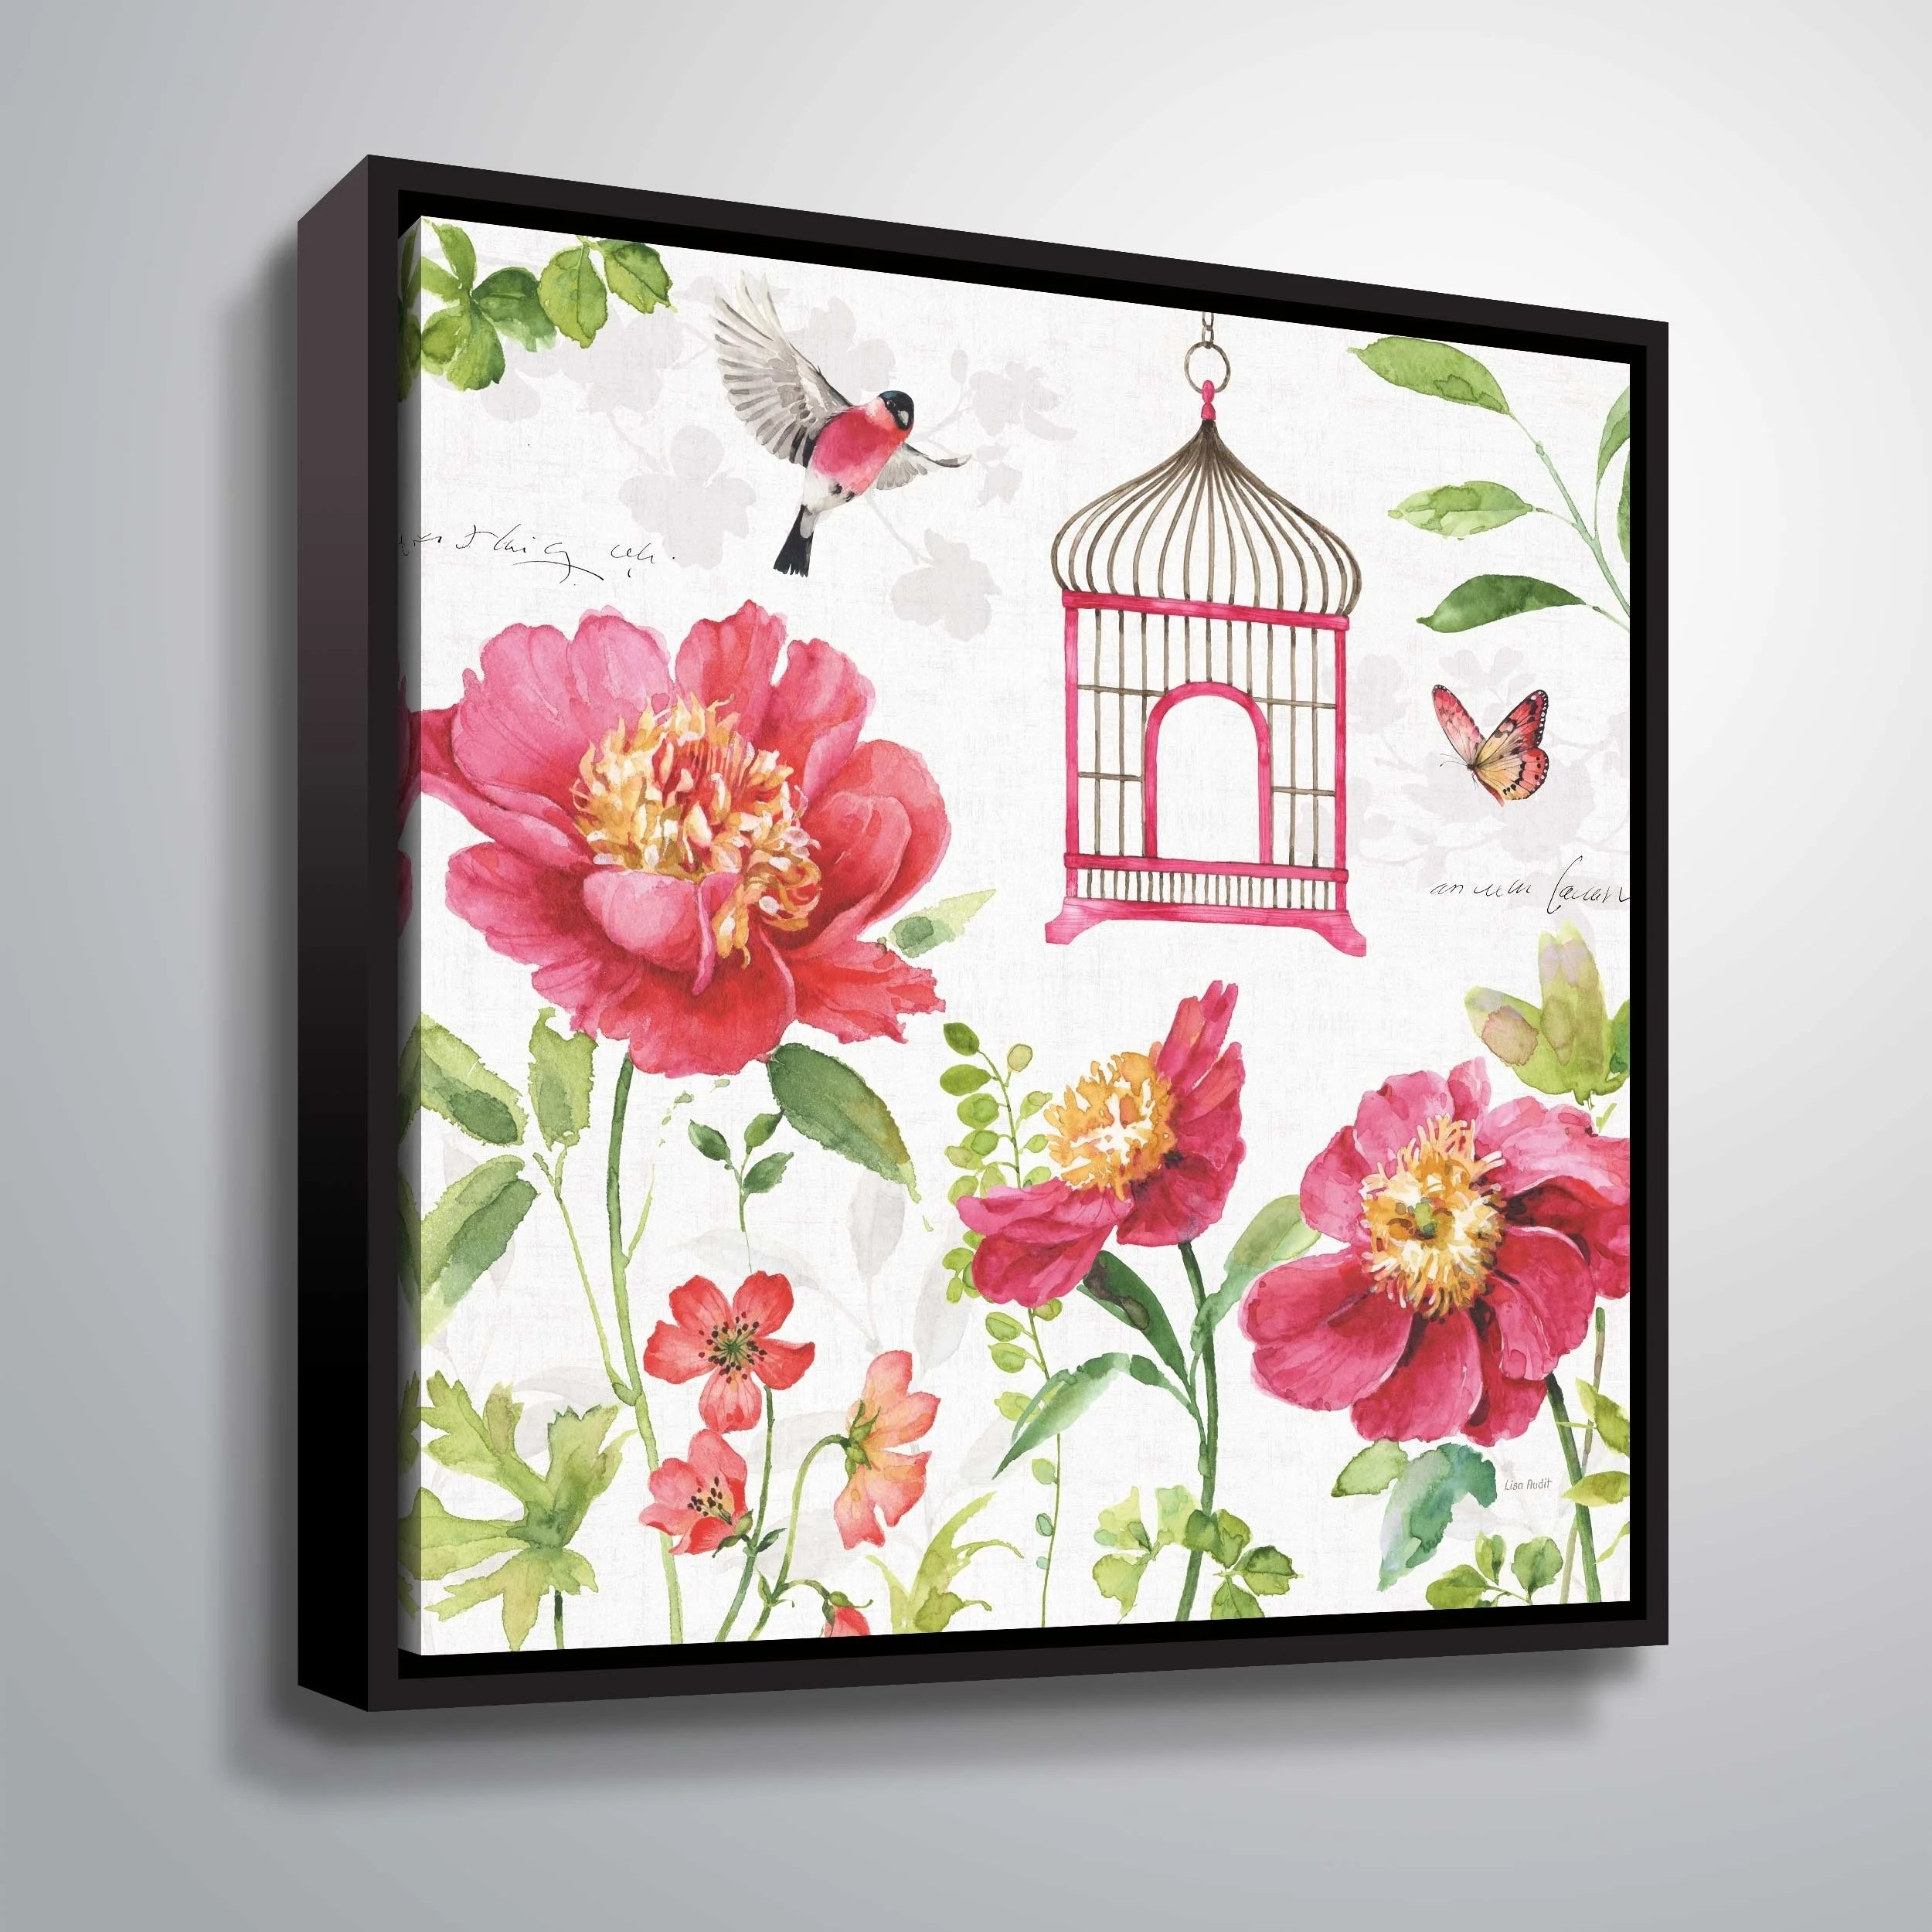 """ArtWall """"Pink Garden IV"""" Gallery Wrapped Floater-framed Canvas"""